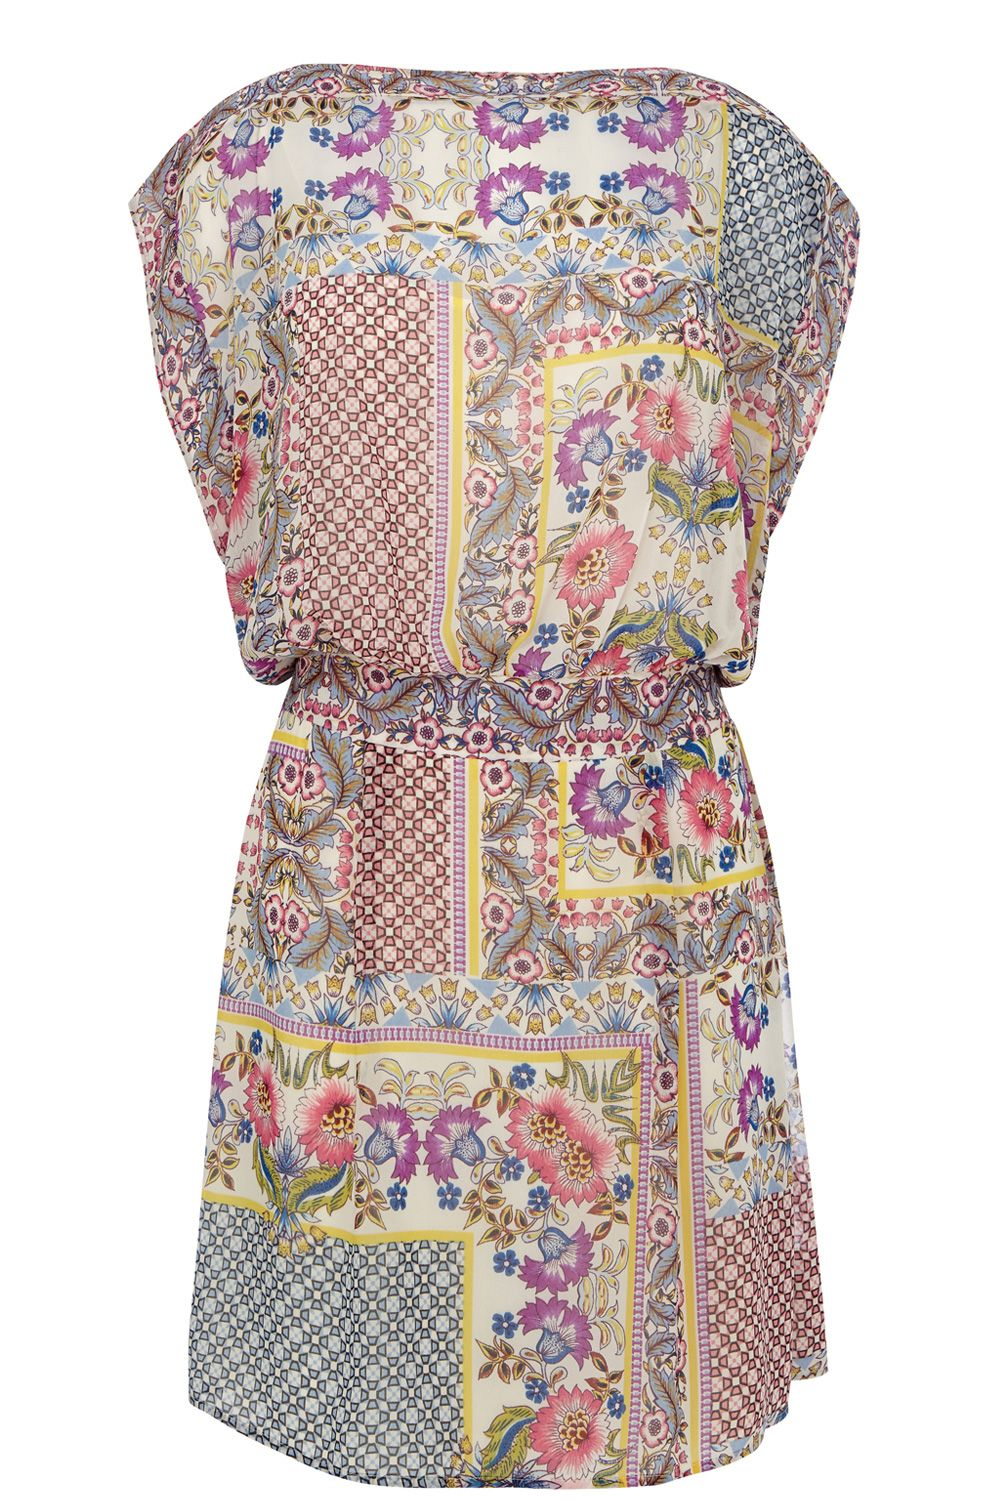 Pretty floral patchwork dress